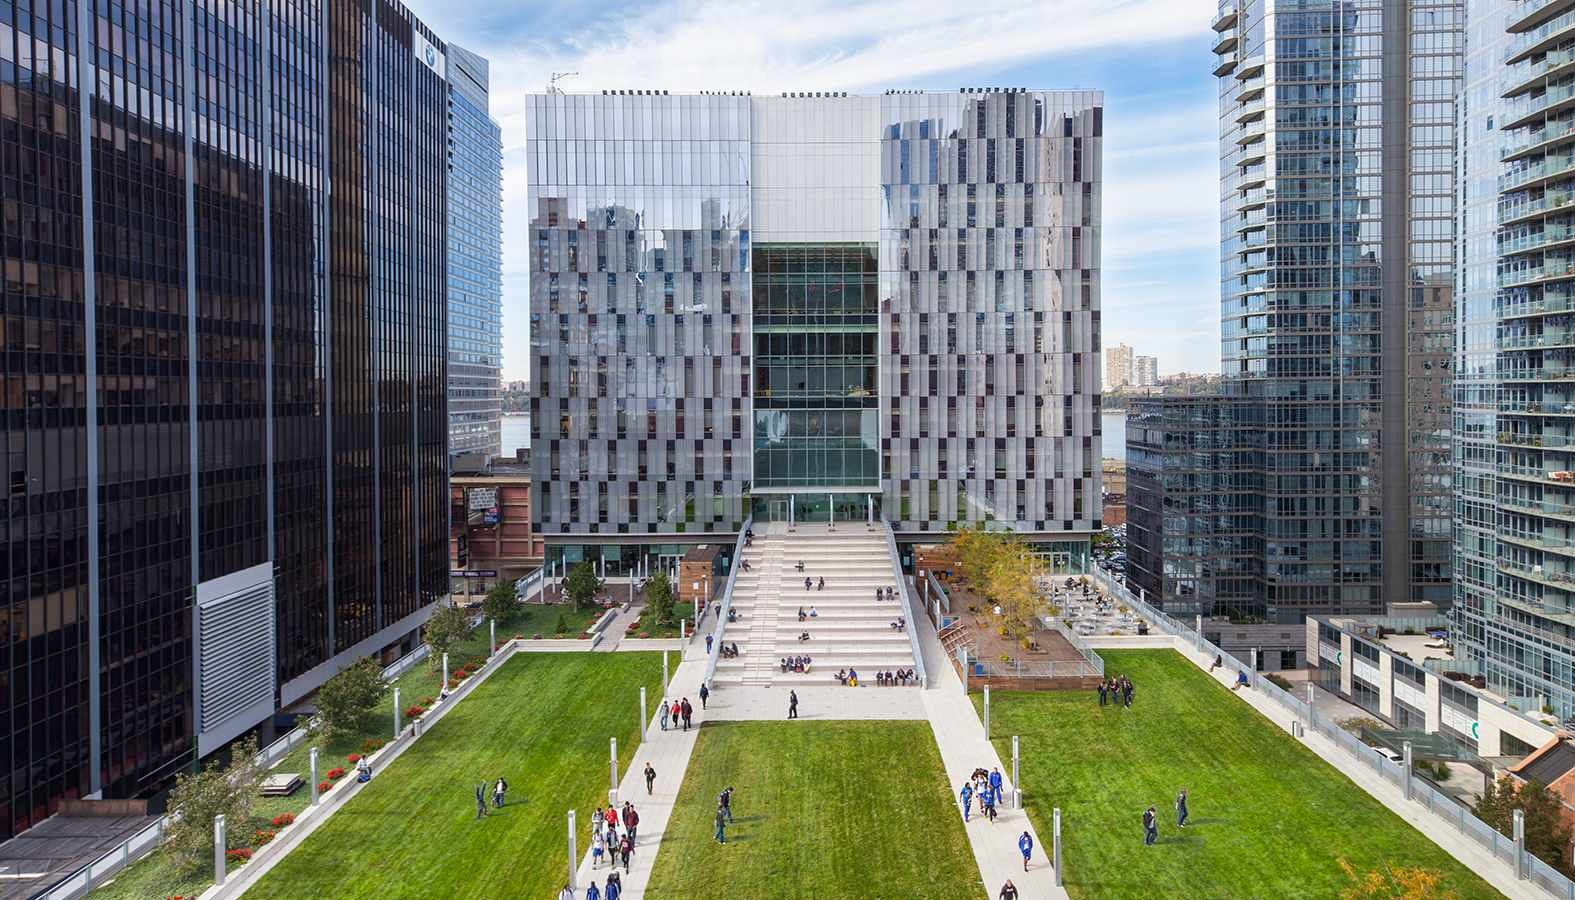 Part Of The City University Of New York Since 1964 The John Jay College Of Criminal Justice Trains Students In Emer John Jay College Criminal Justice John Jay